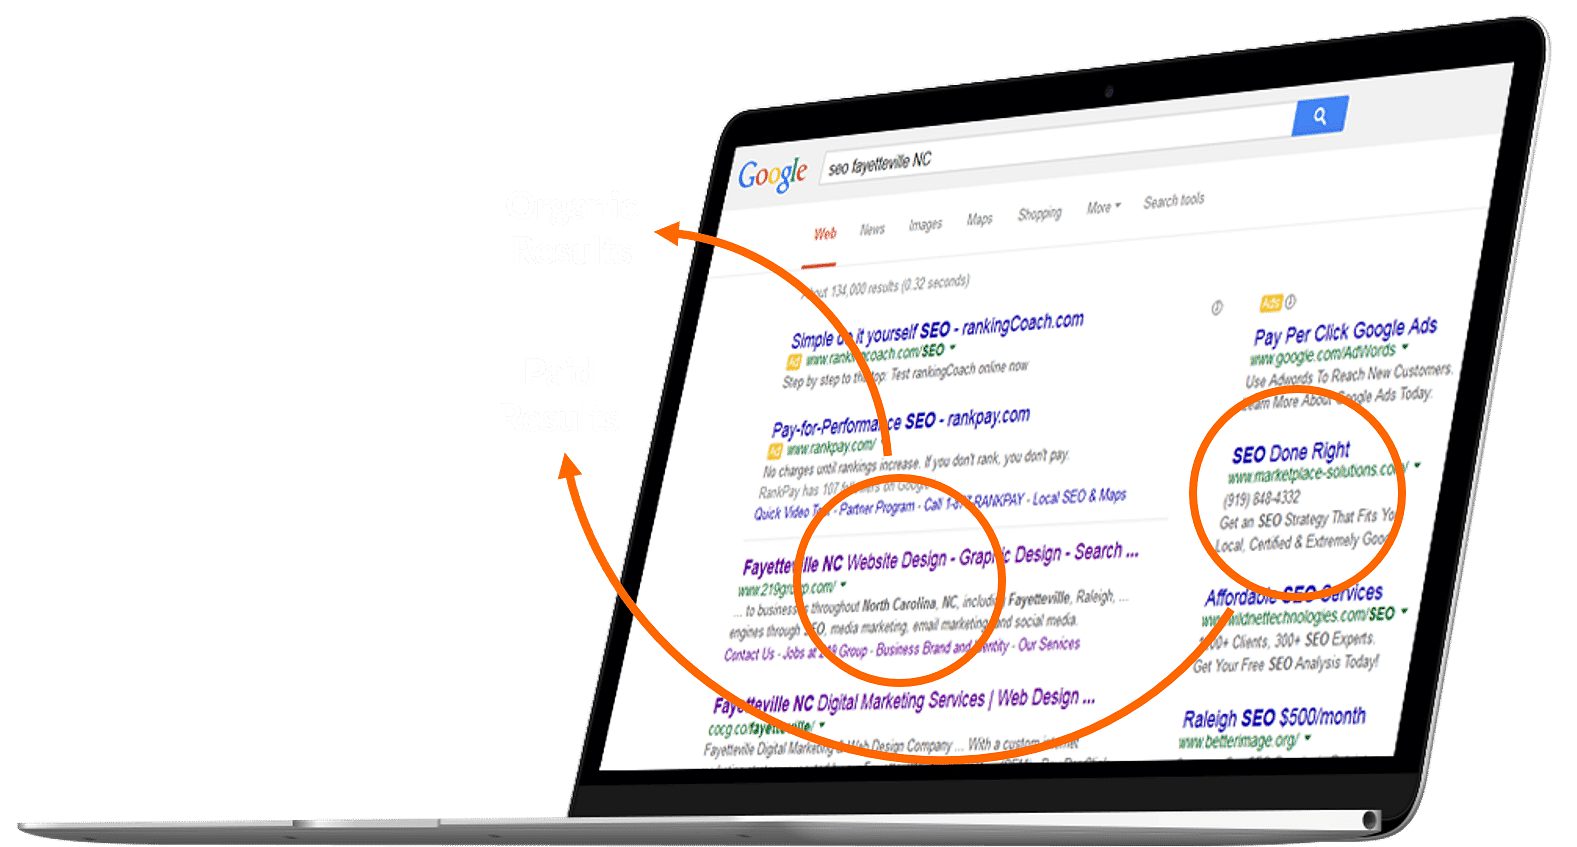 5 ways to gain SEO clients quickly